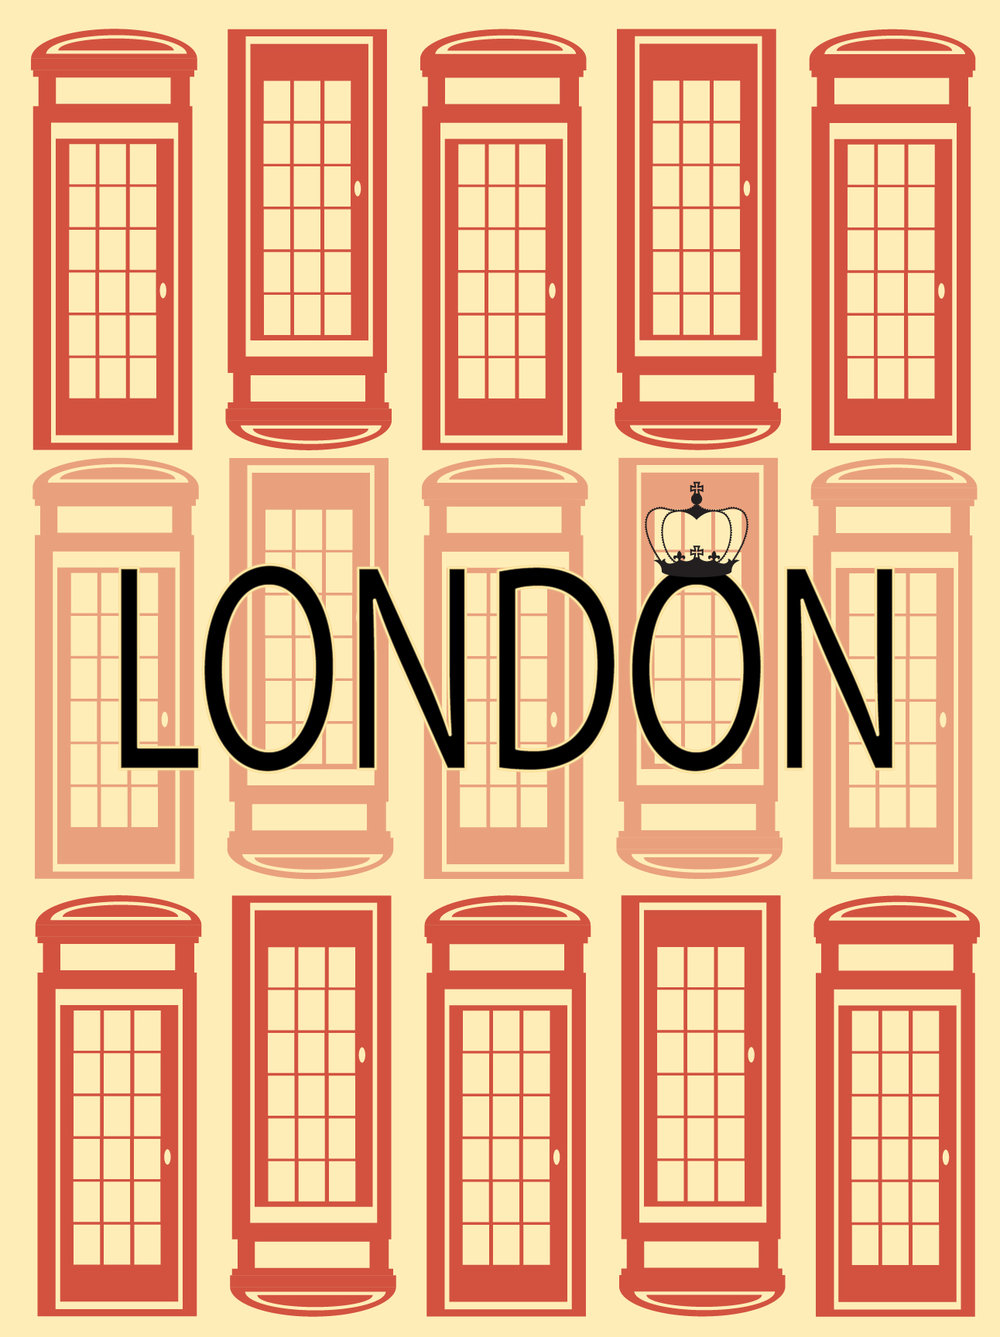 London Postcard (Adobe Illustrator 2017)